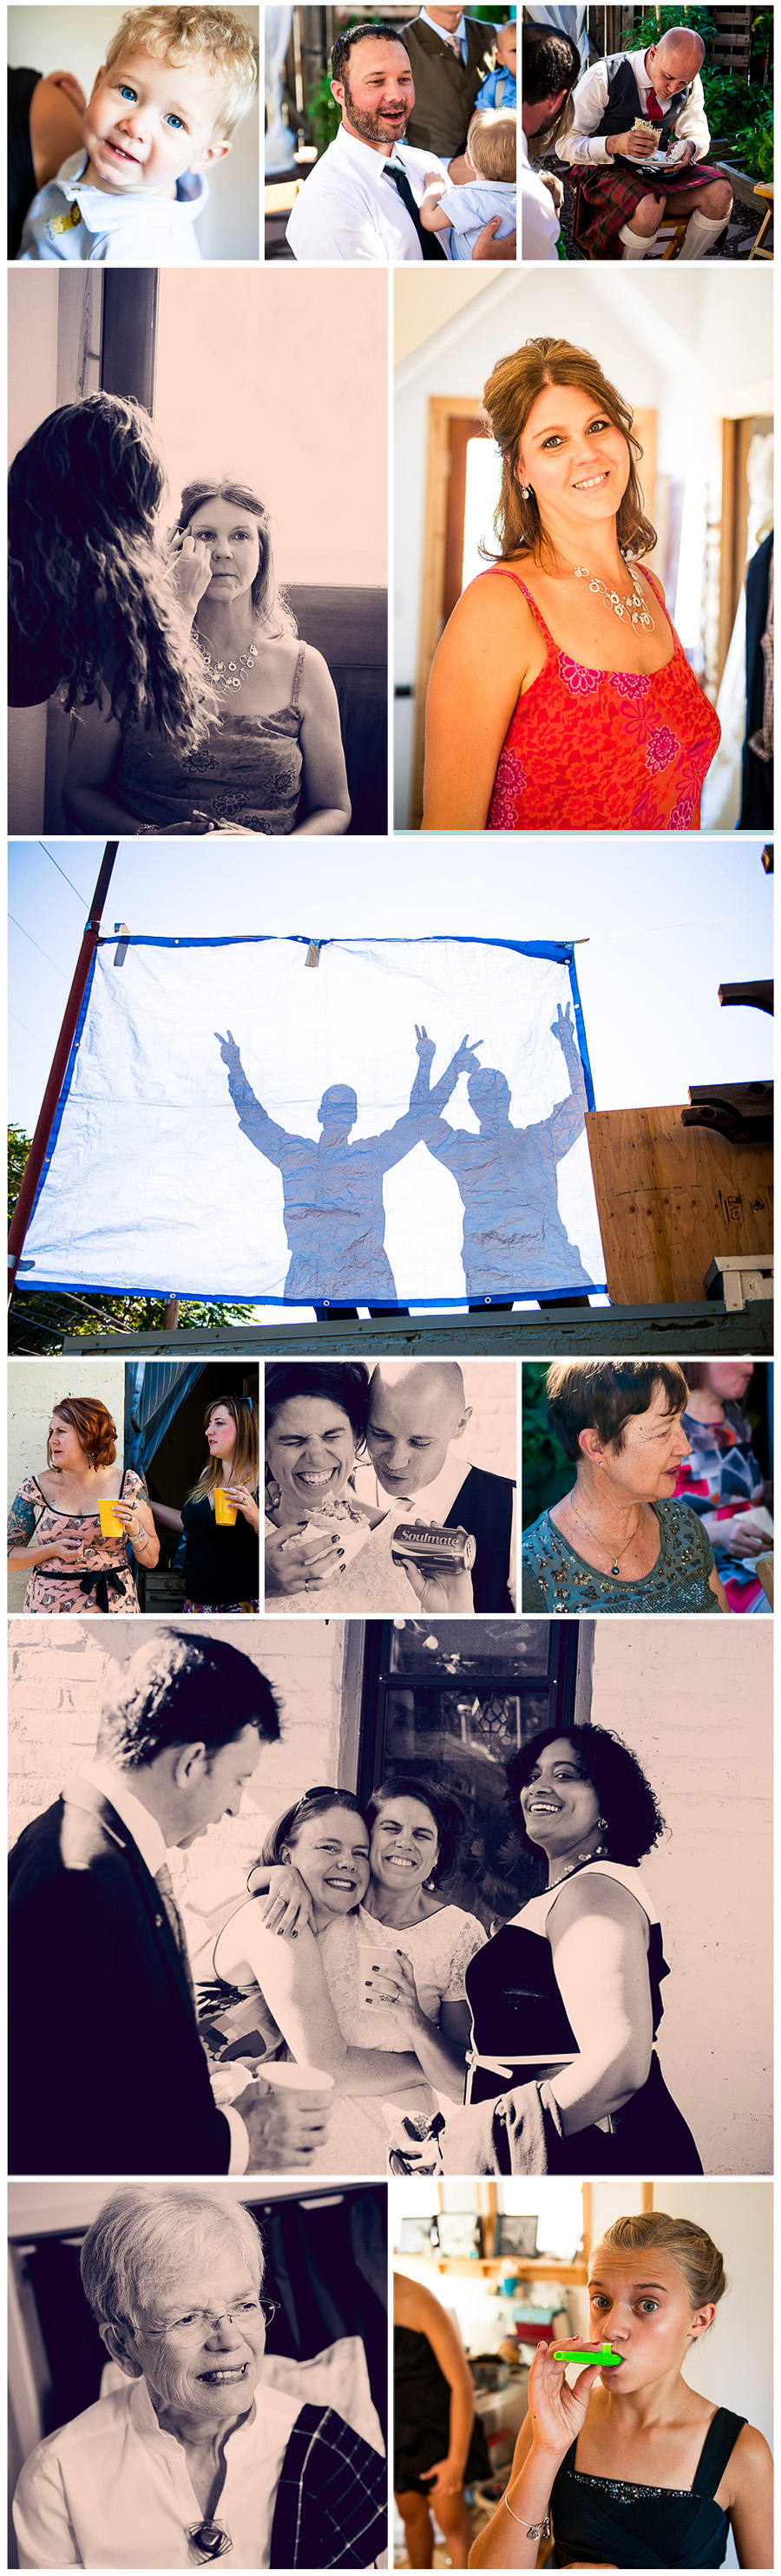 Kate and Ed's Wedding Collage 4